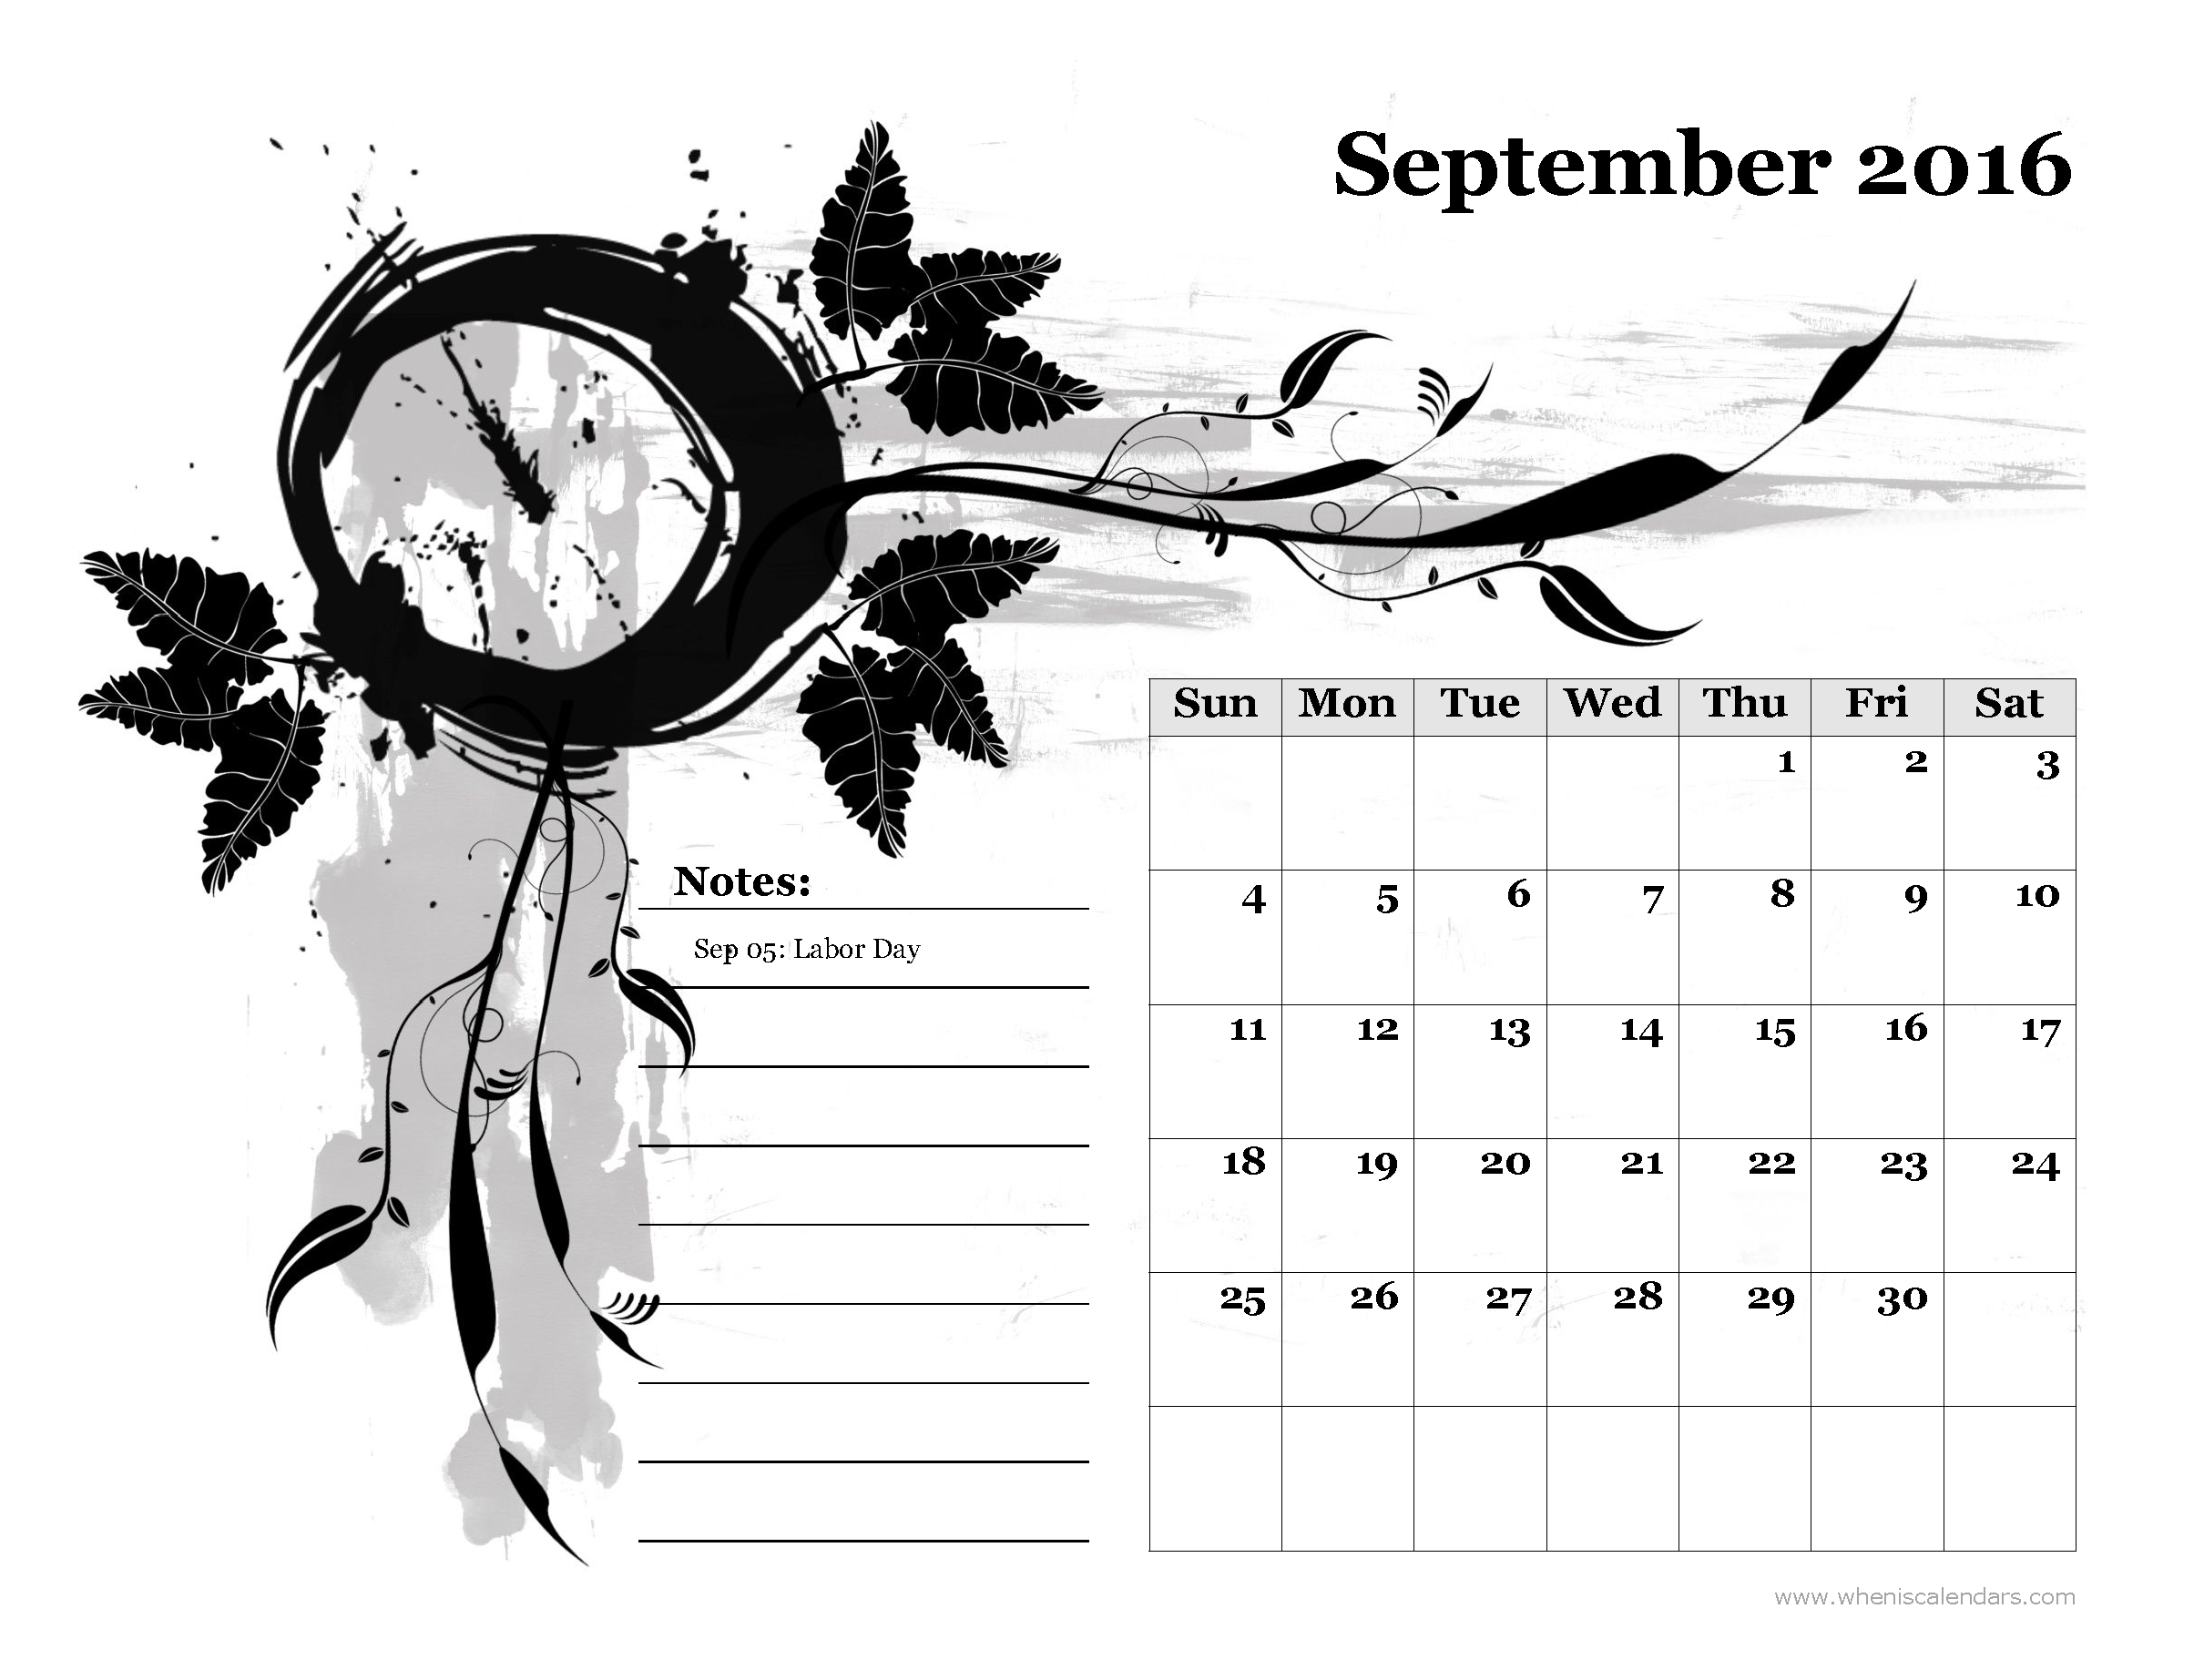 September 2016 Calendar Philippines.